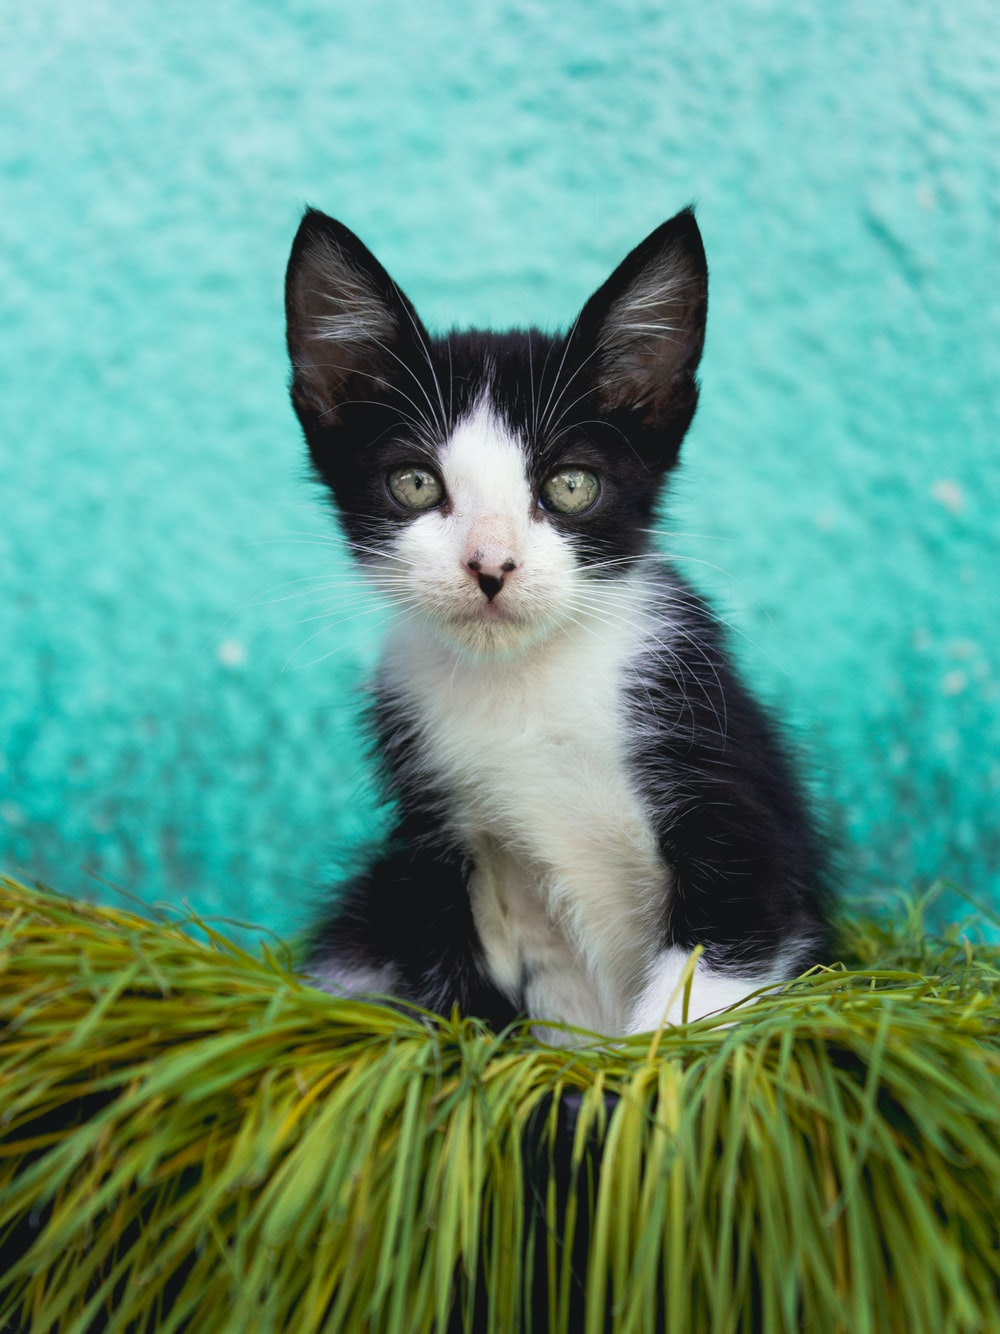 tuxedo cat on green and brown wicker basket